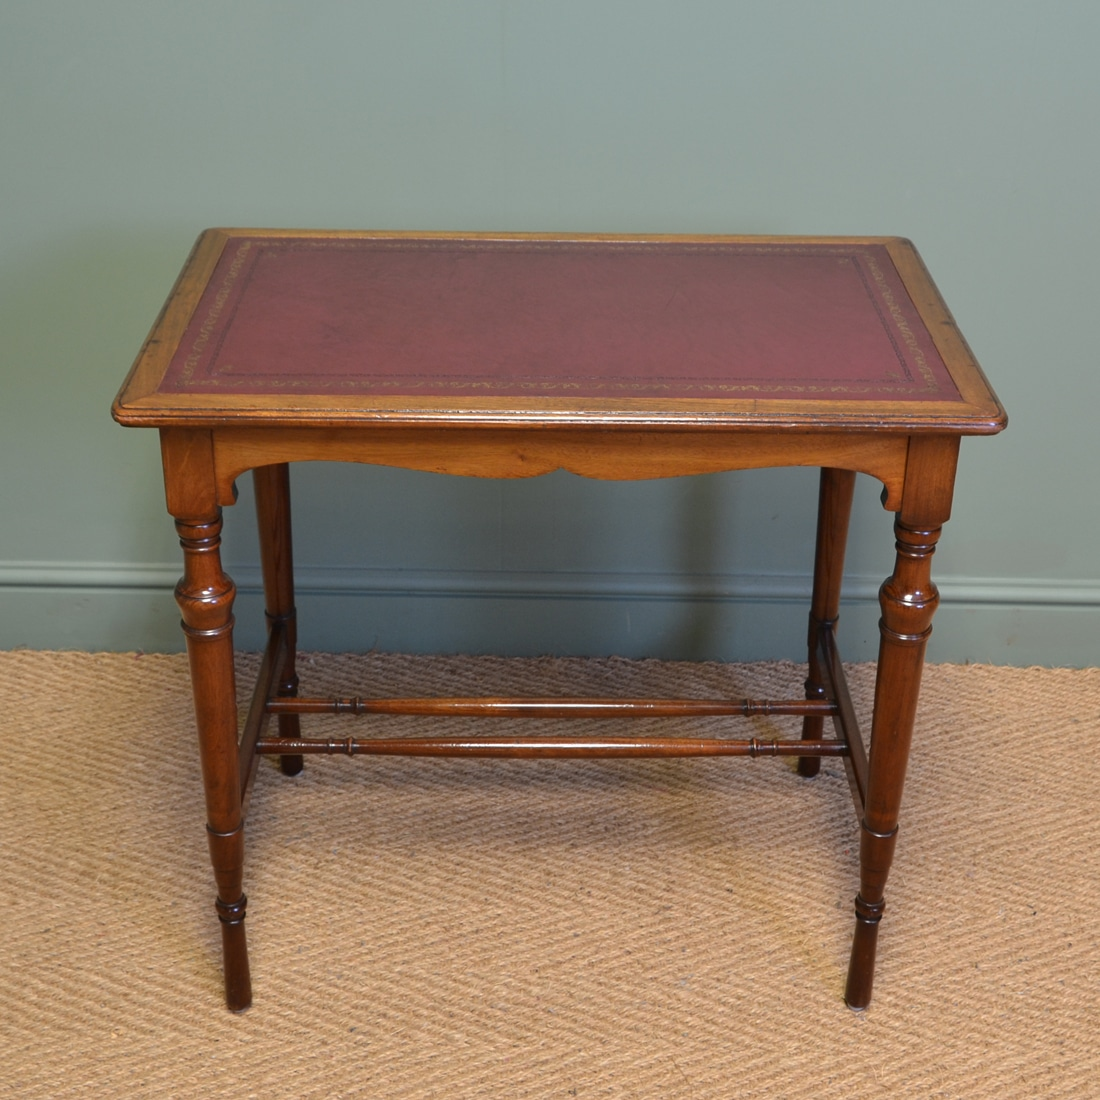 Quality victorian arts and crafts walnut antique side for Crafting desks for sale